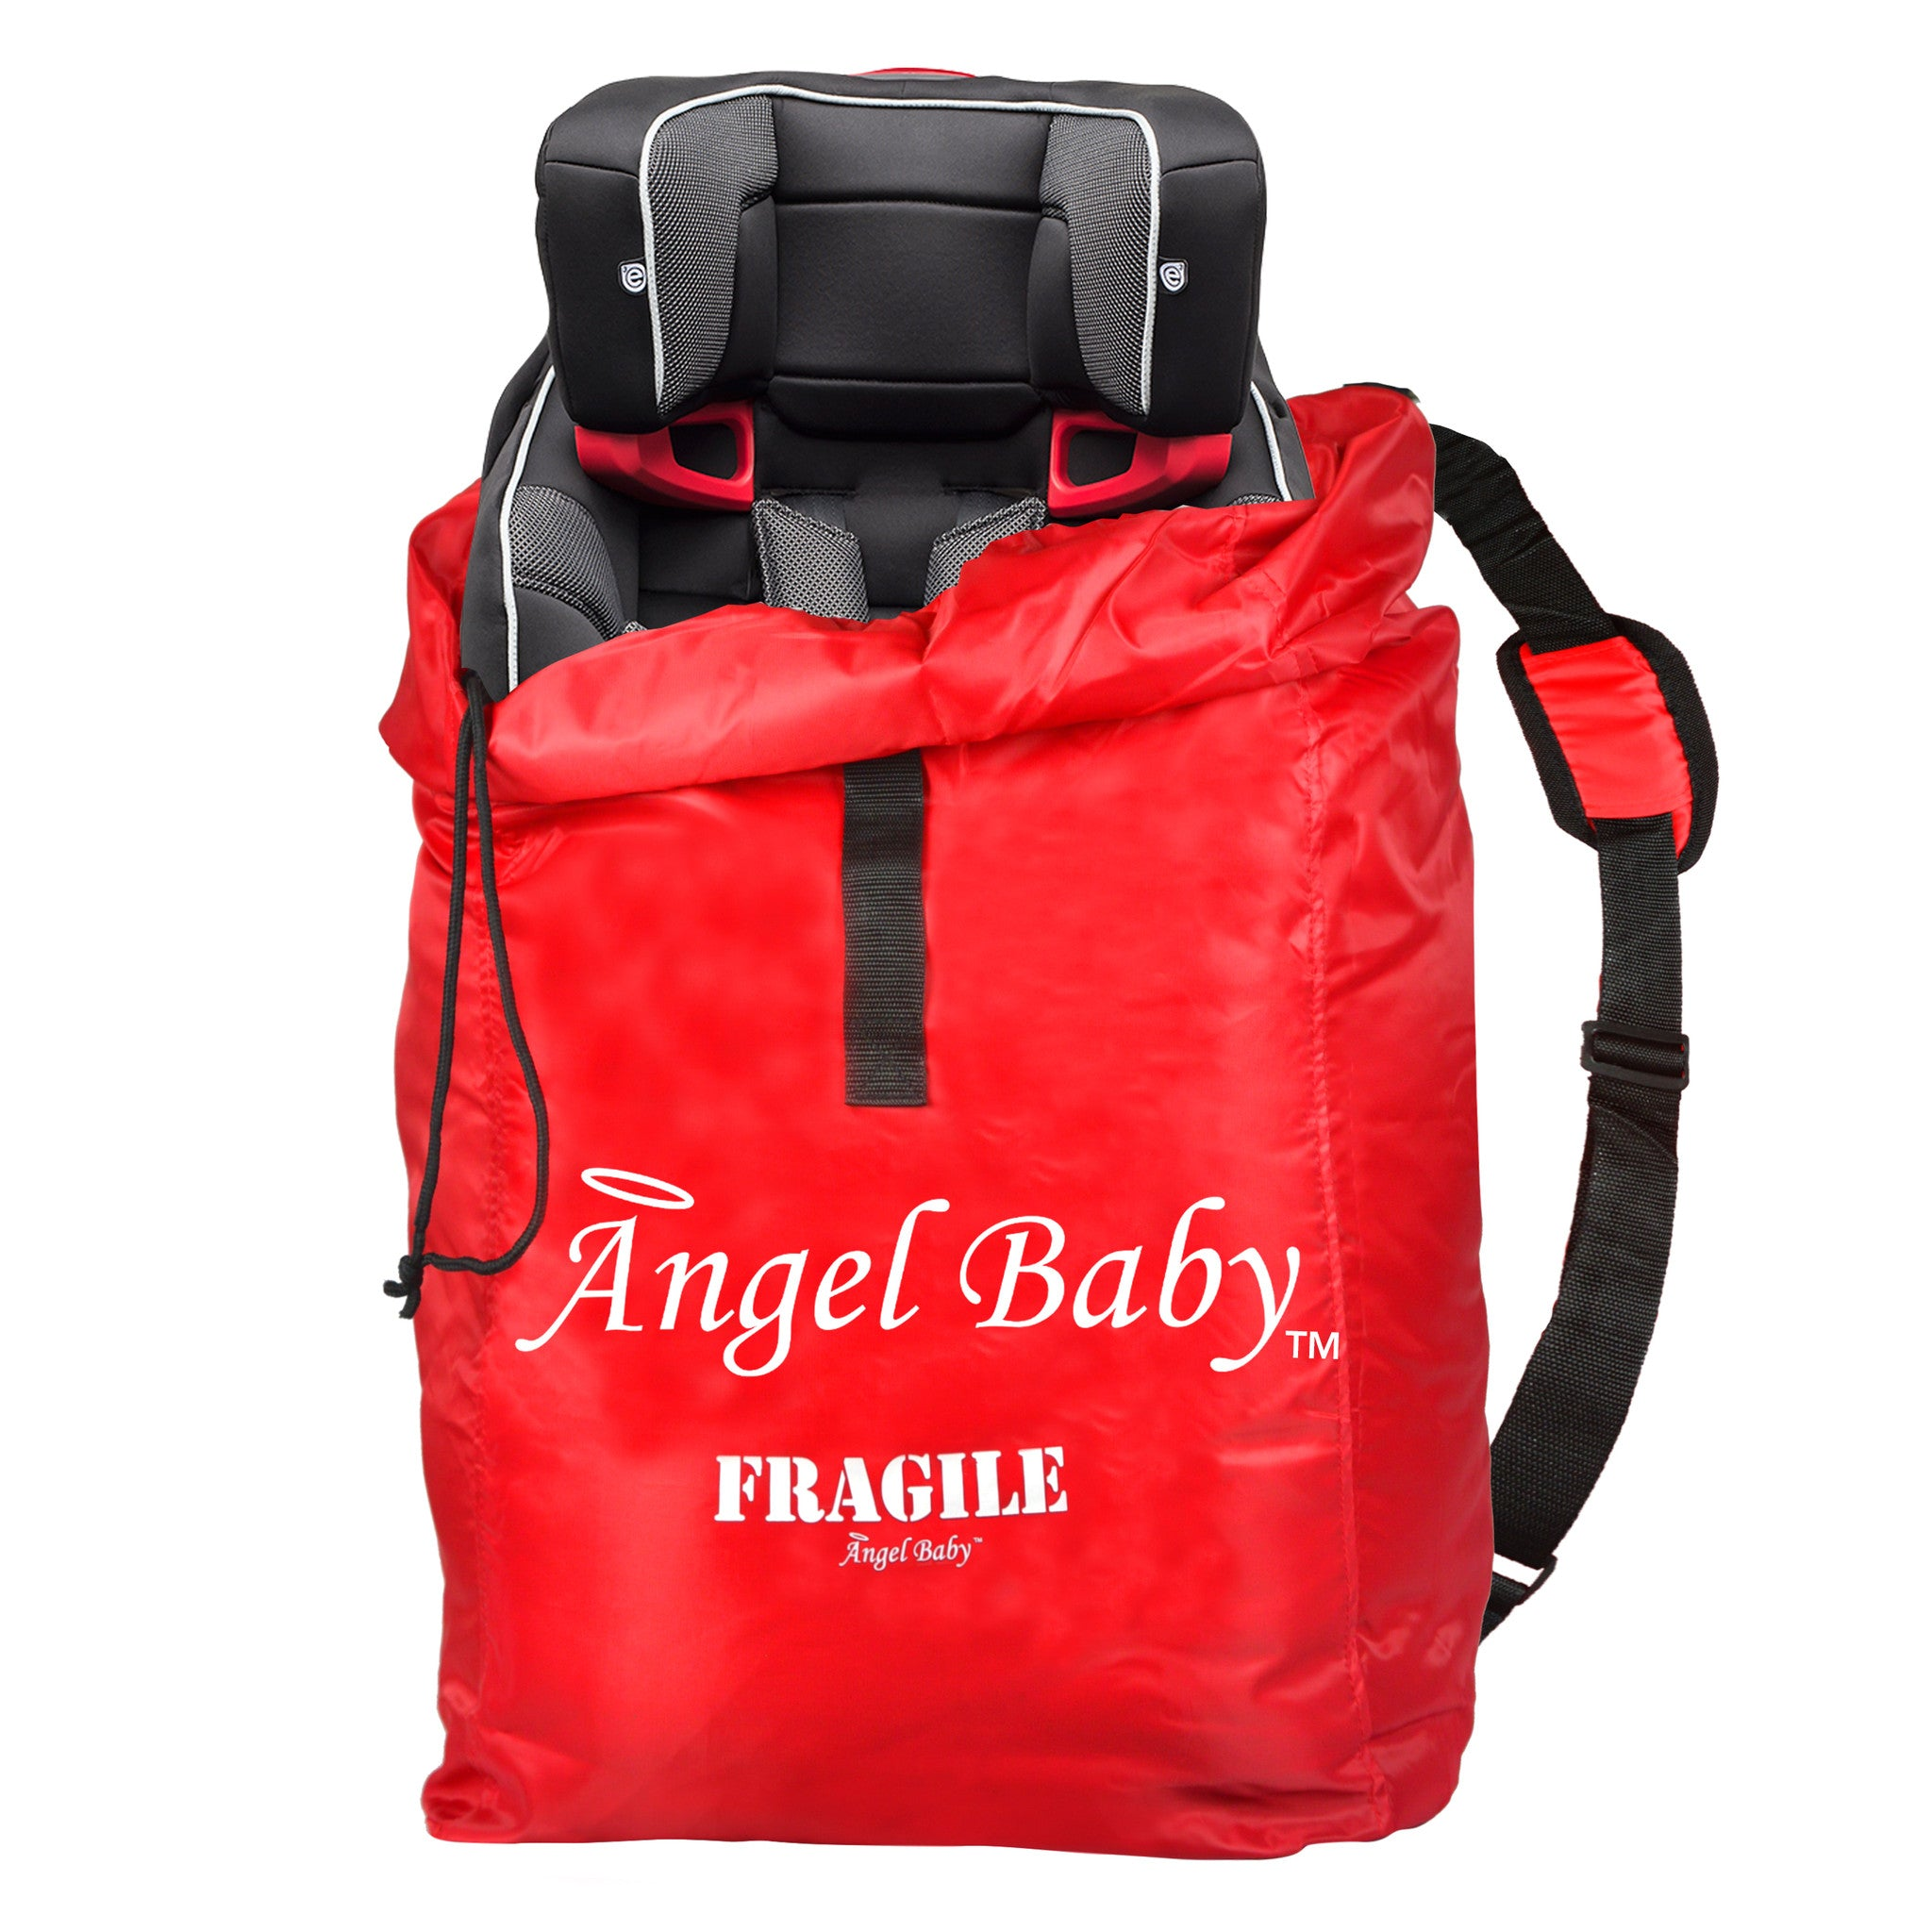 Angel Baby Red Polyester Car Seat Travel Bag - Angel Direct Products - 1